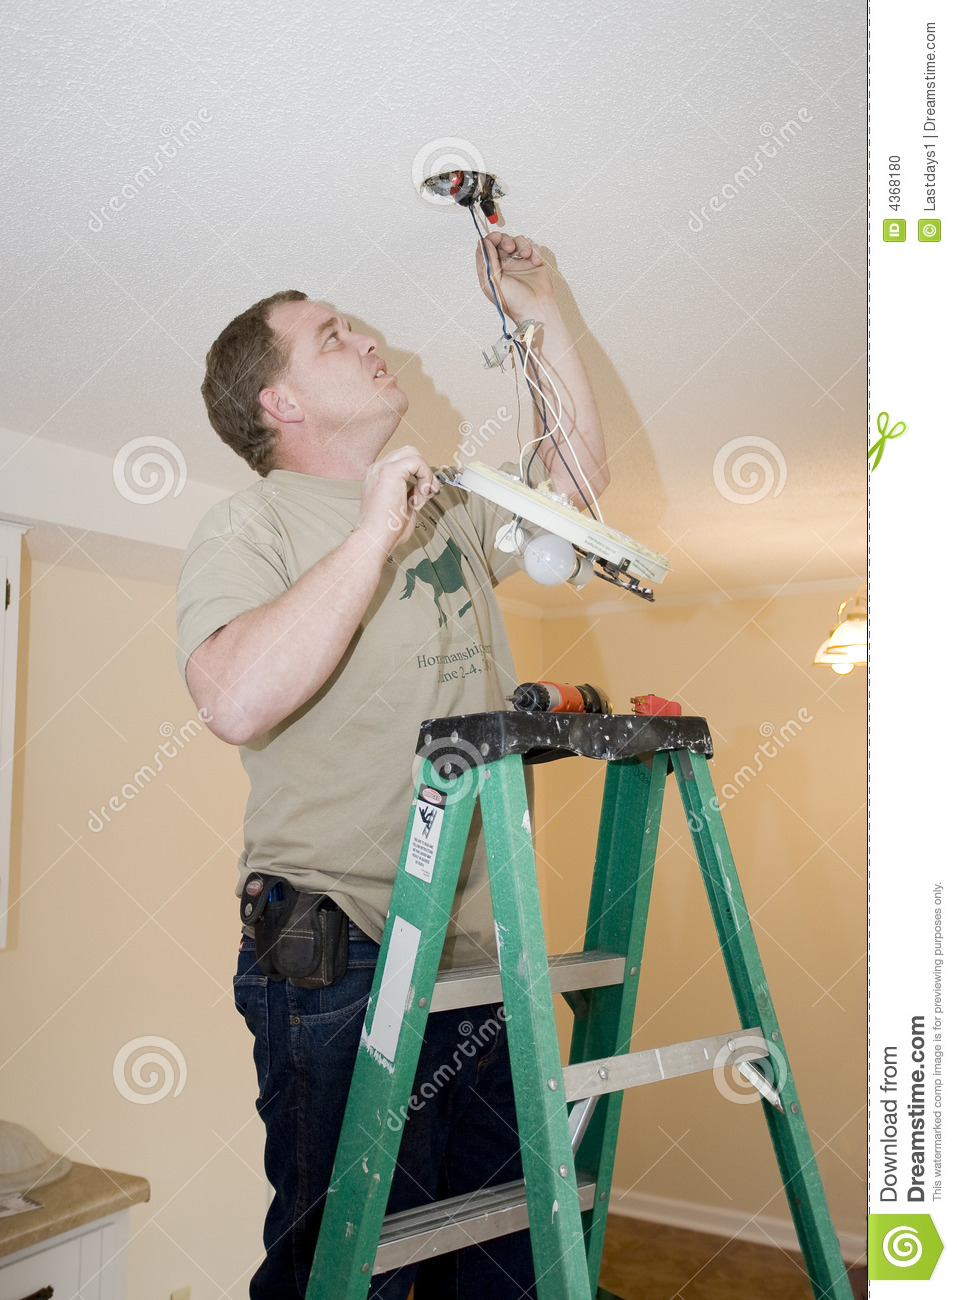 Electrician Working Stock Photo Image 4368180